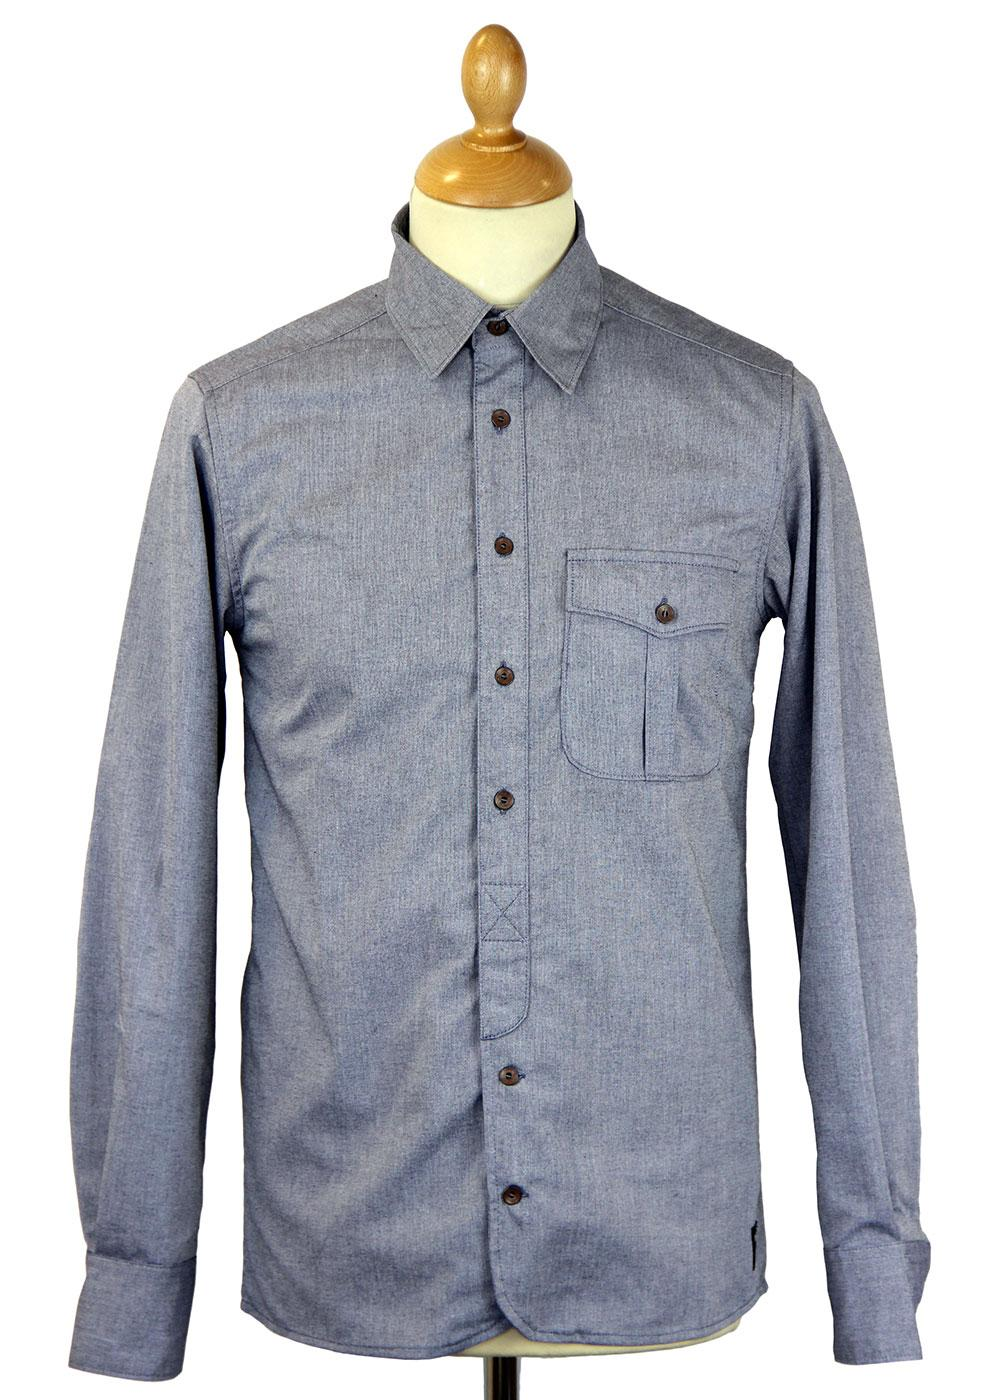 REALM & EMPIRE Retro Mod Chambray Engineers Shirt